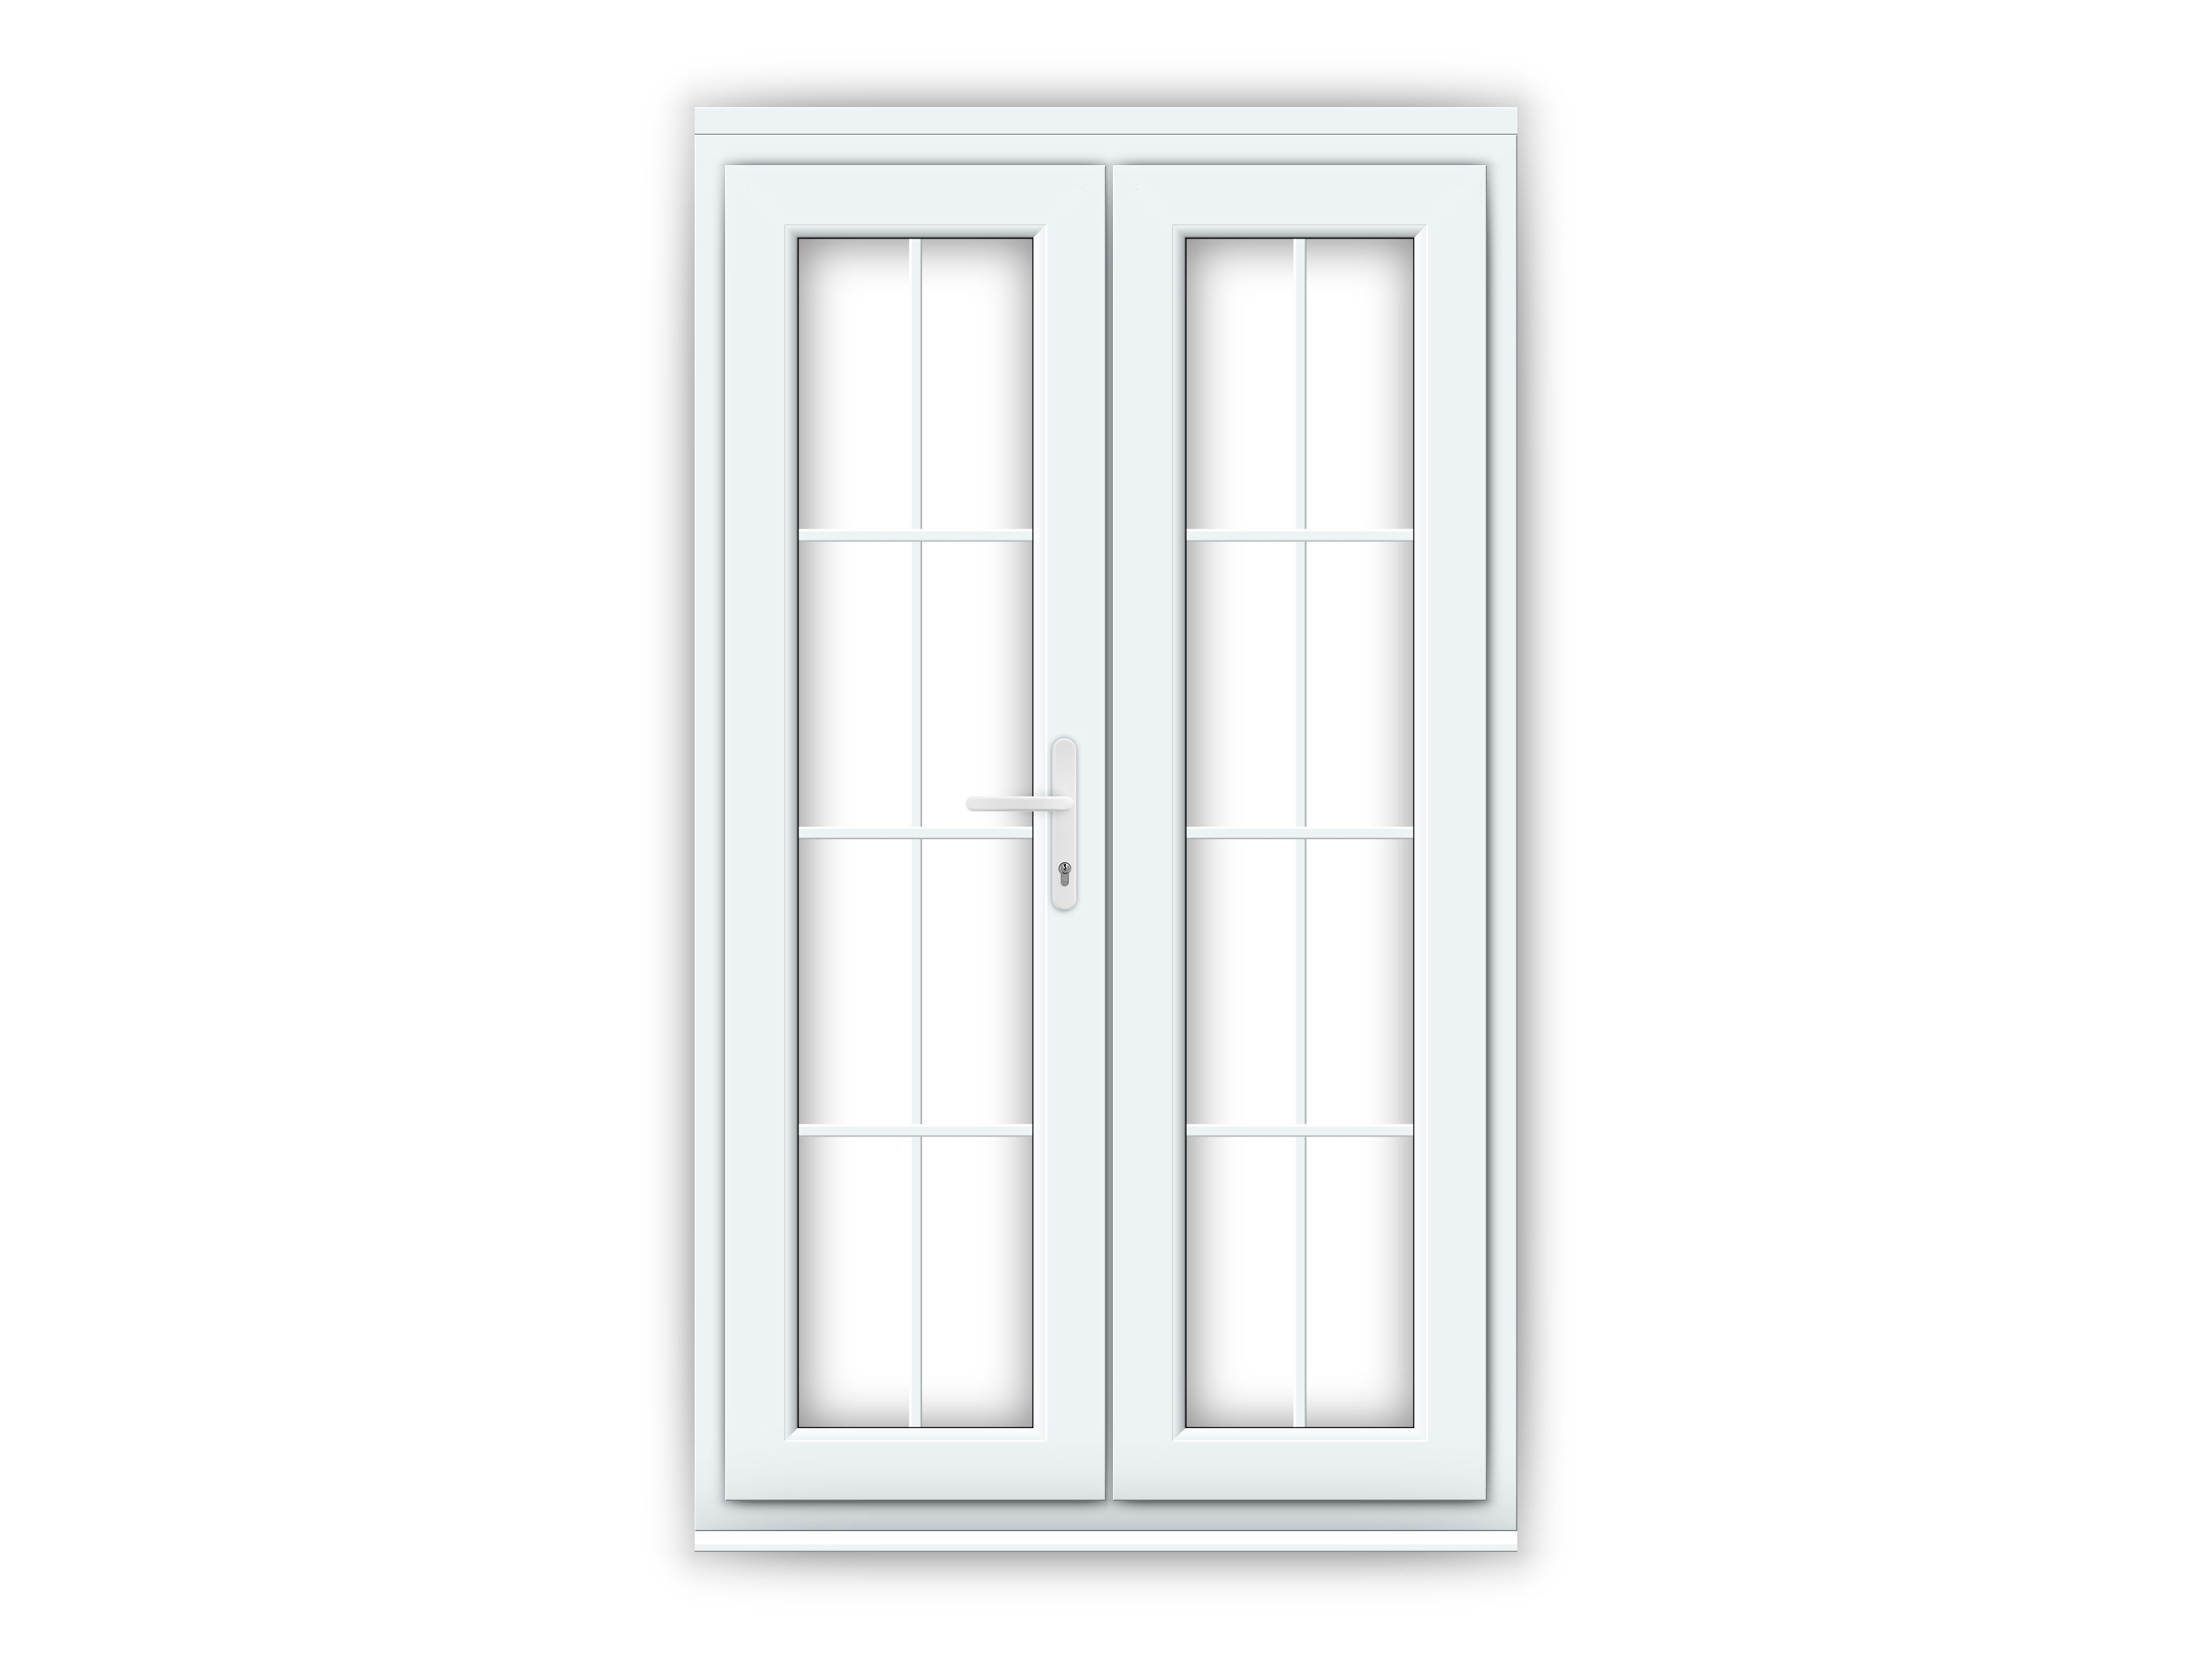 4ft upvc georgian french doors flying doors for Upvc french doors 1790 x 2090mm